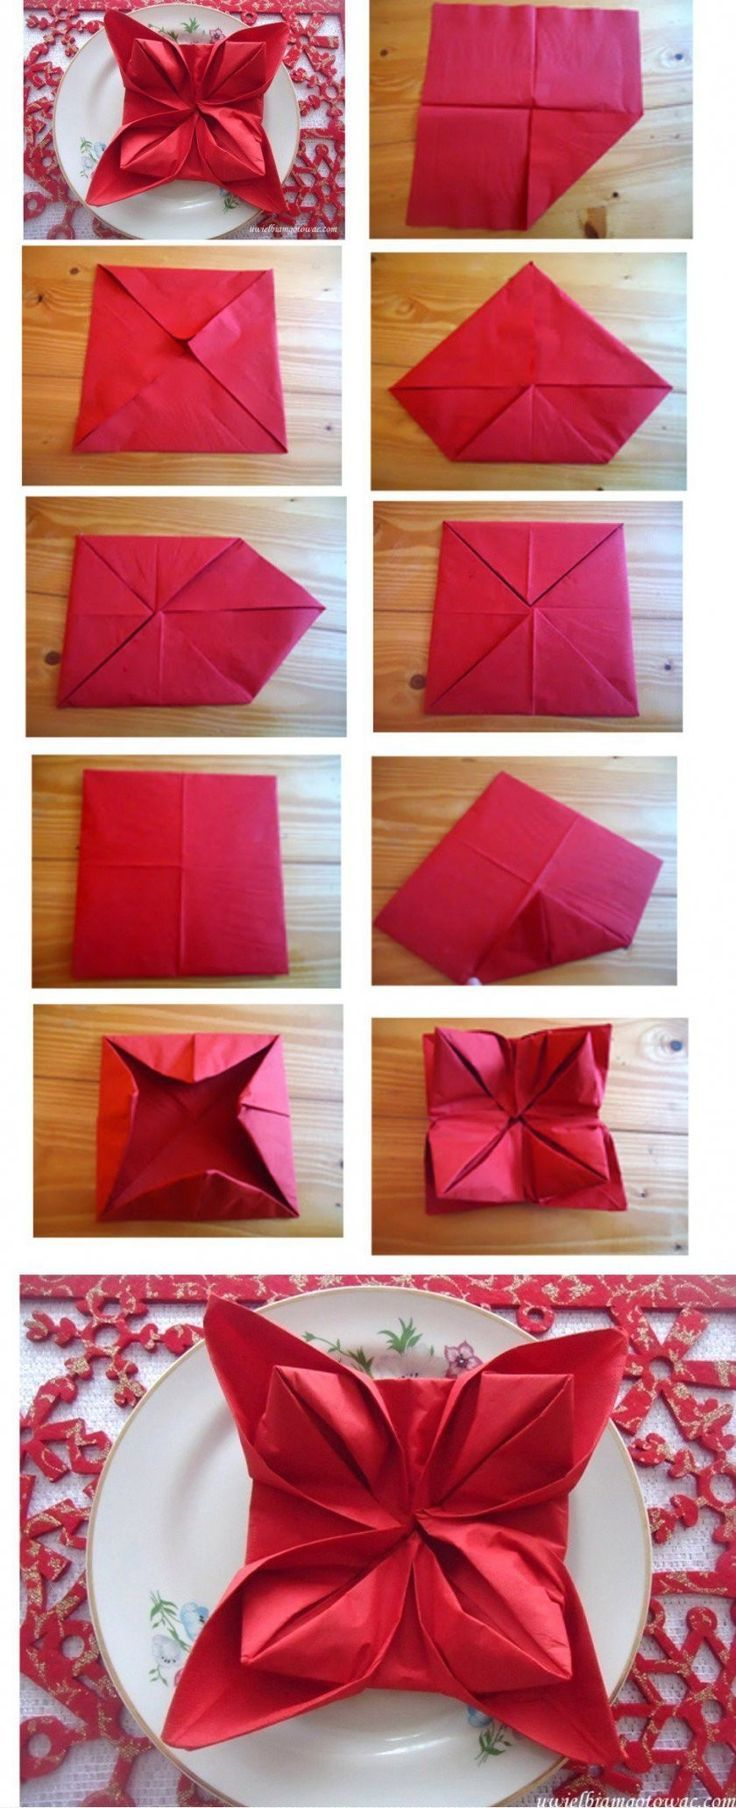 Christmas Napkin Folding Pictures Photos And Images For Facebook Tumblr Pinterest And Twitter